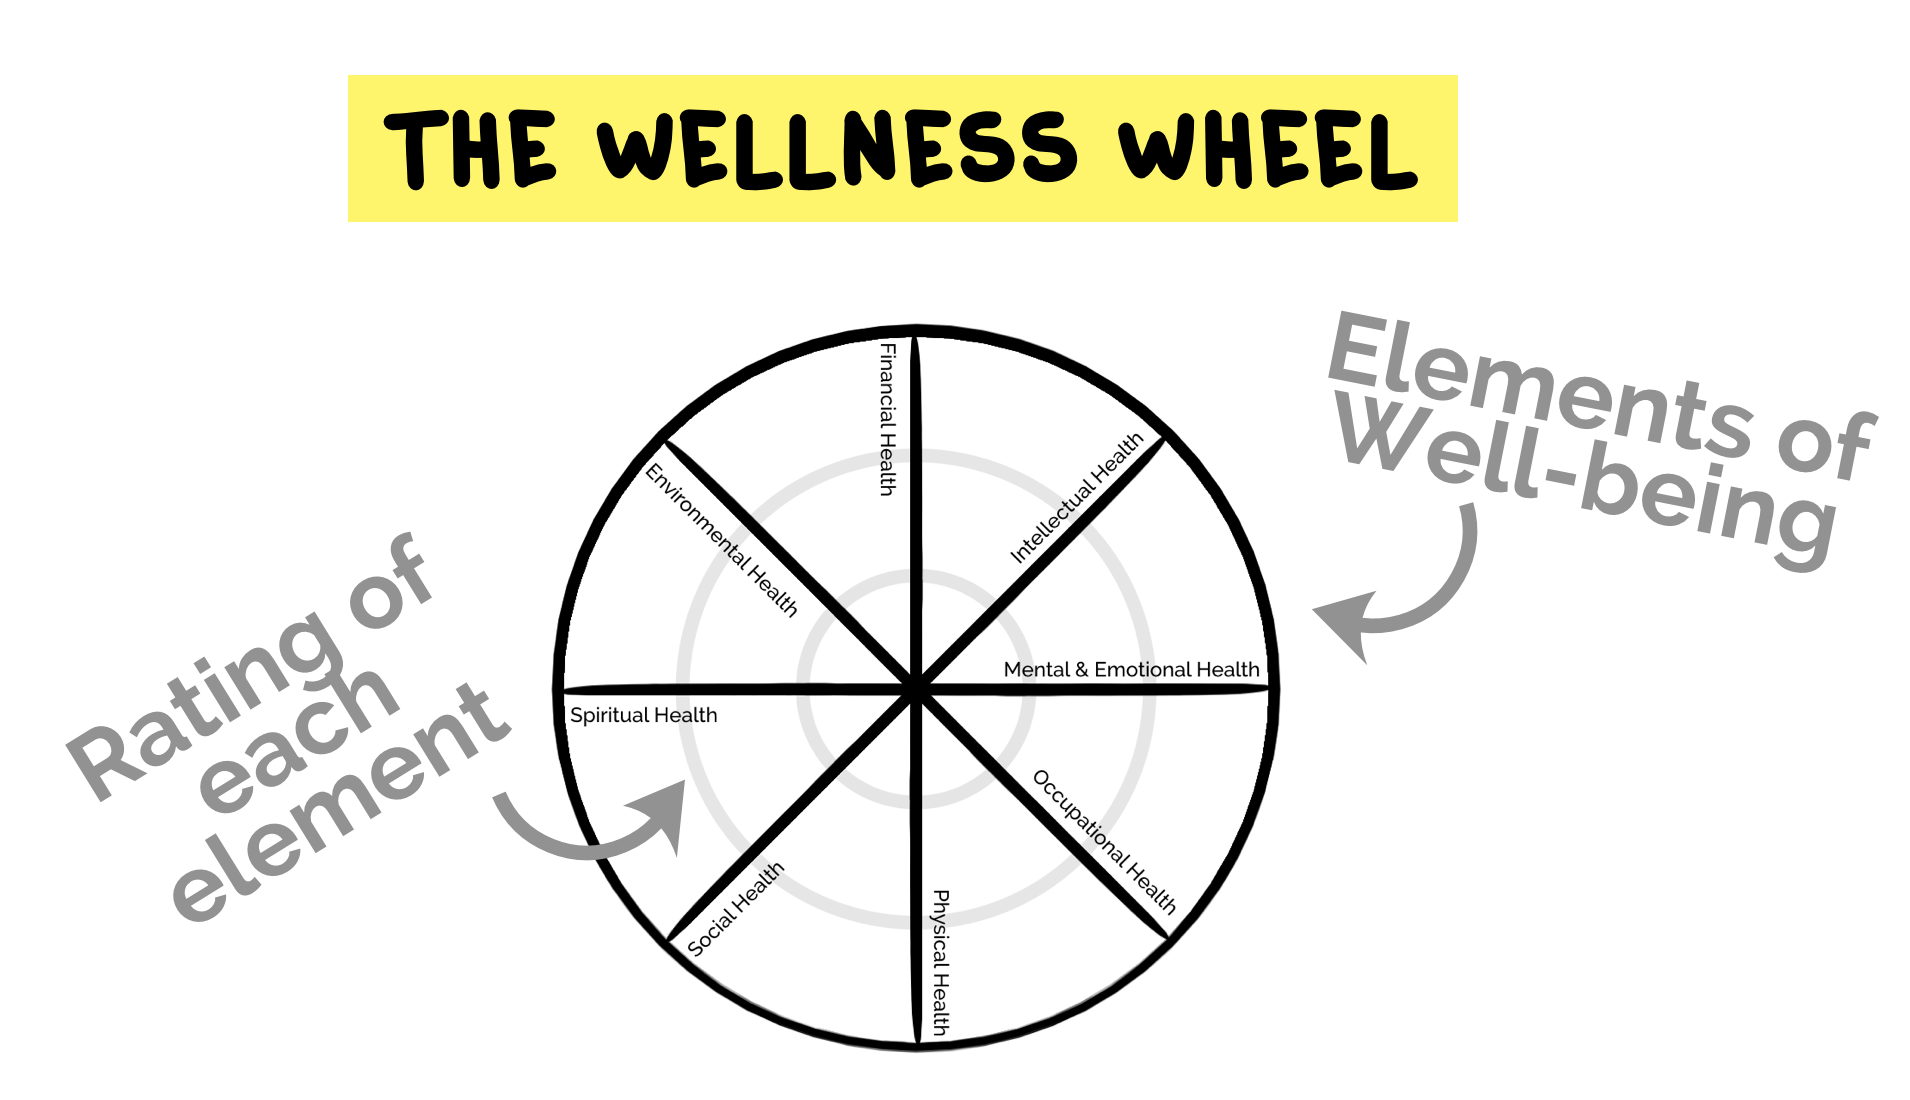 The Wellness Wheel - a free health education lesson plan by Project School Wellness